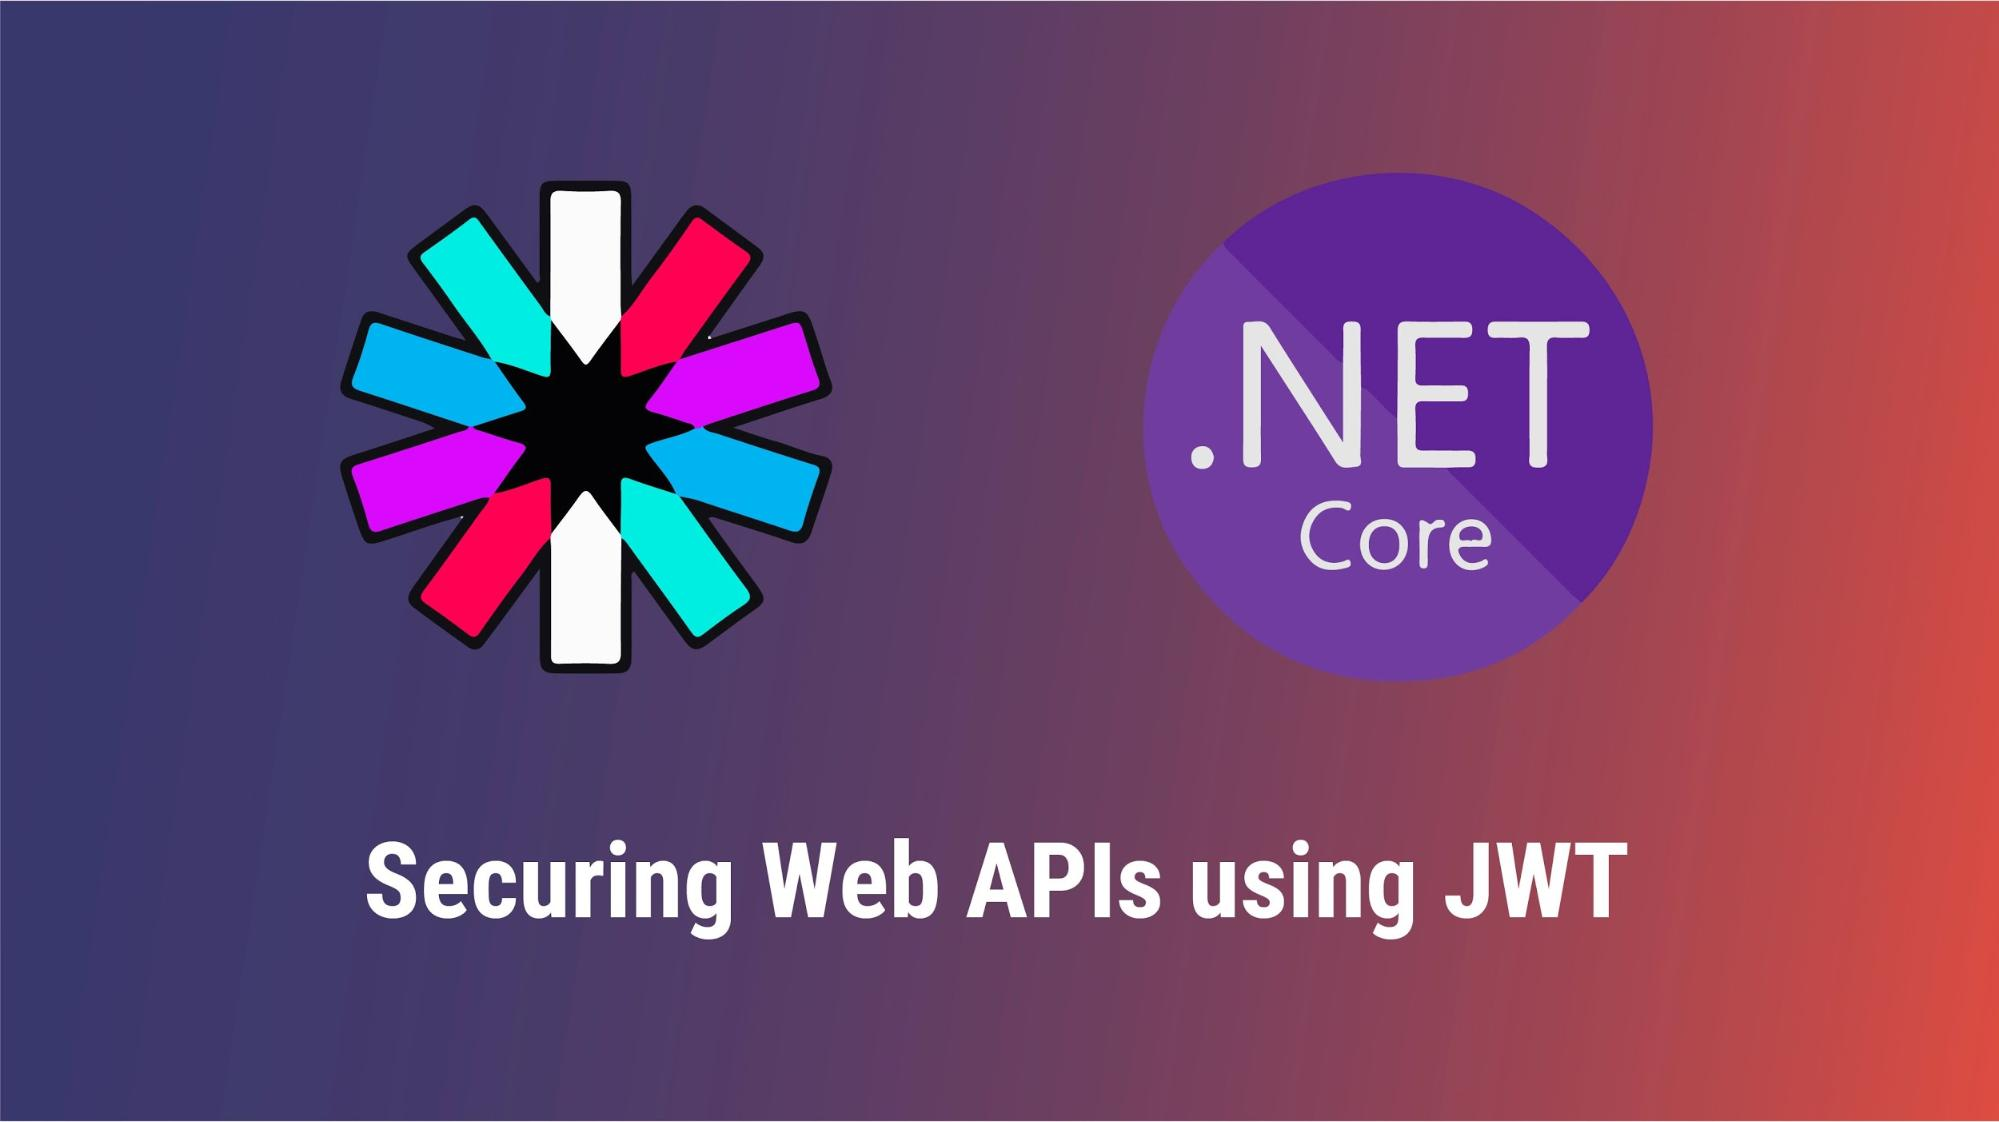 Securing web APIs using JWT